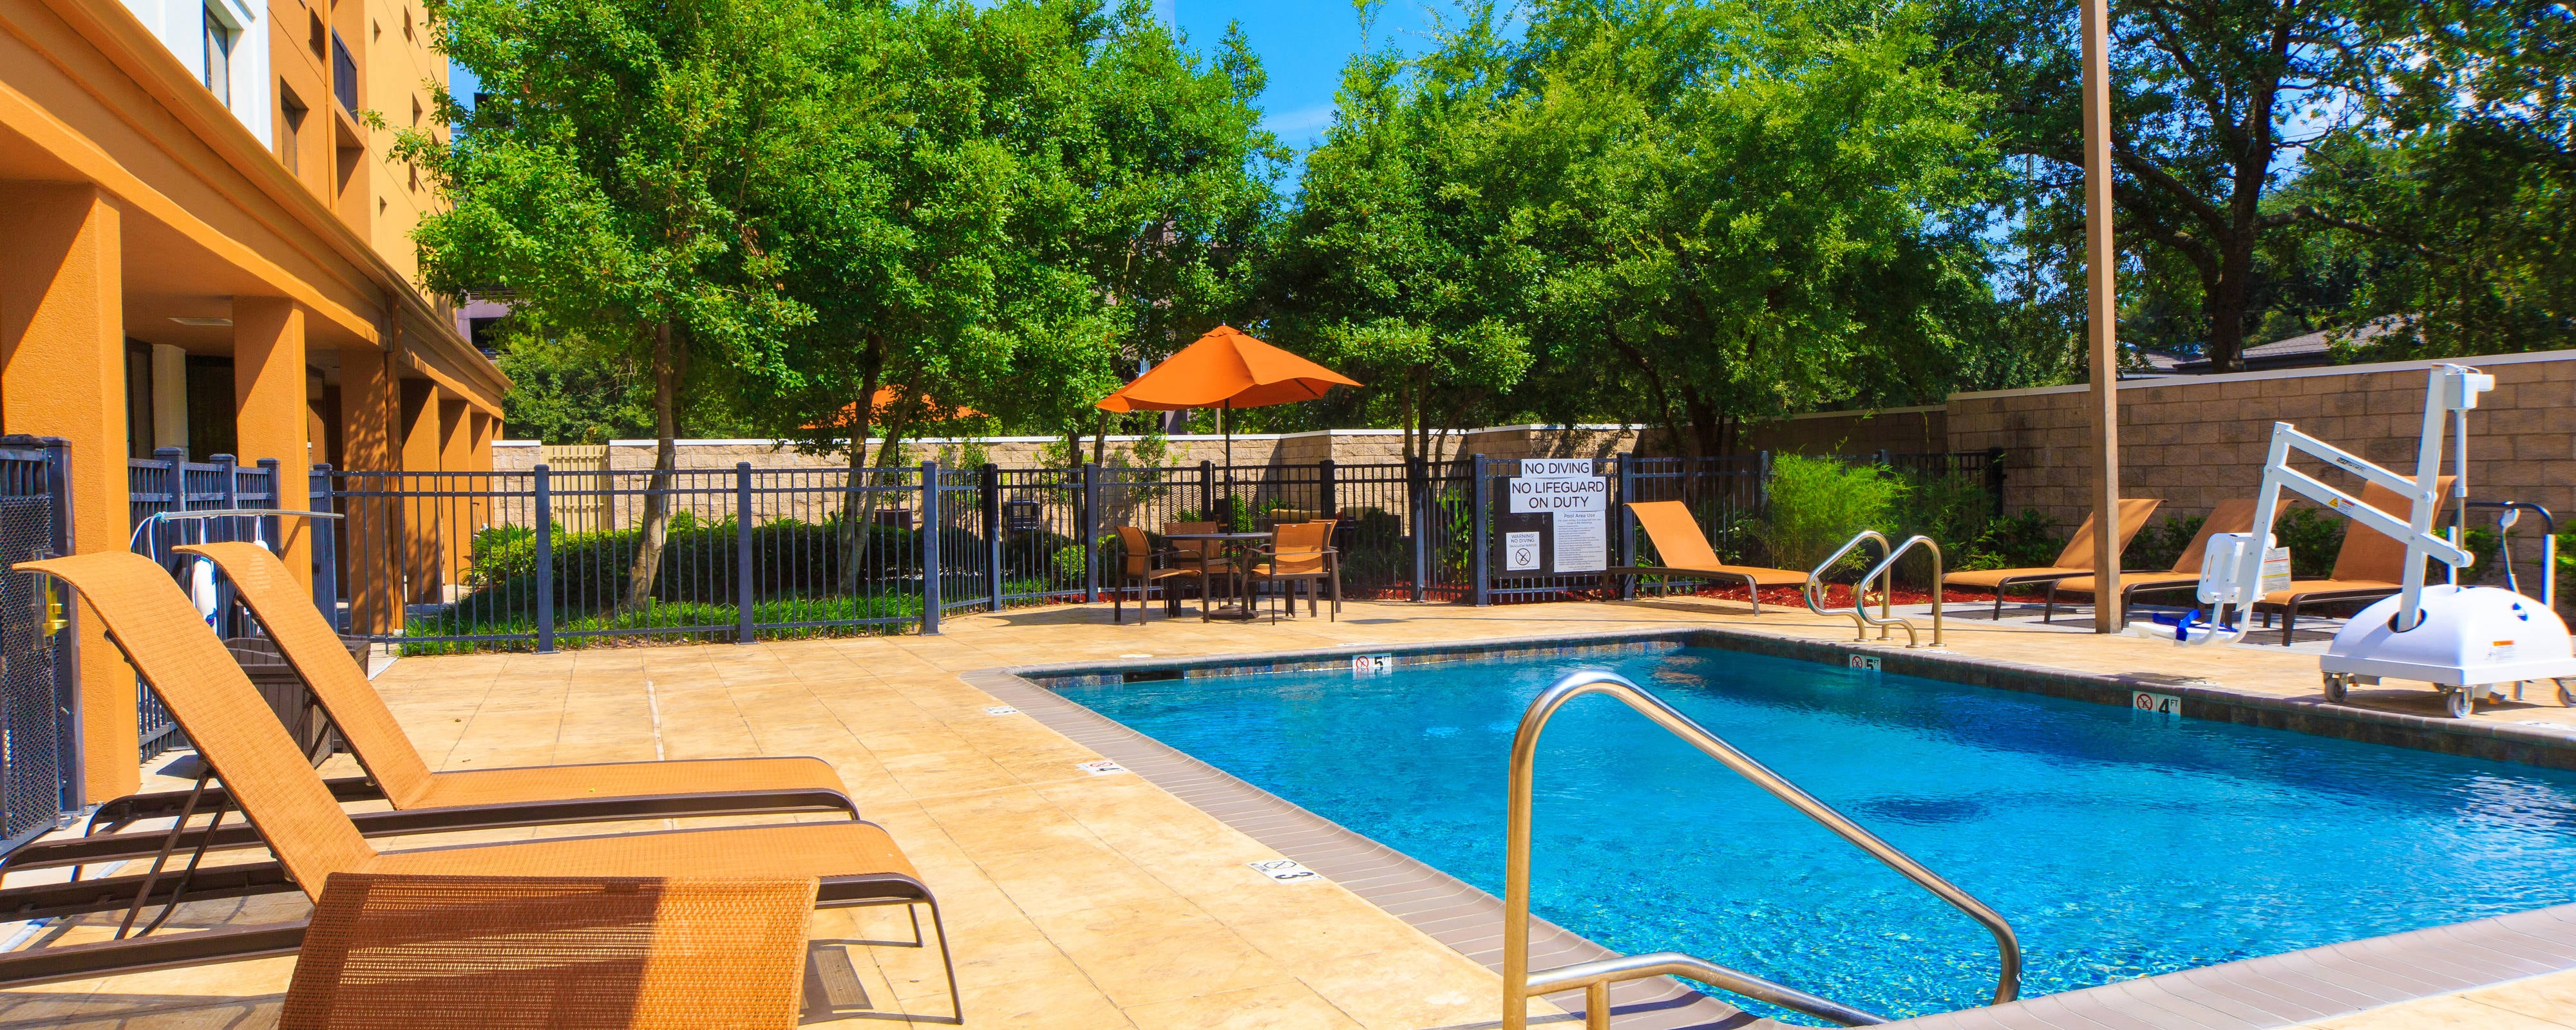 Hotelpool in Metairie